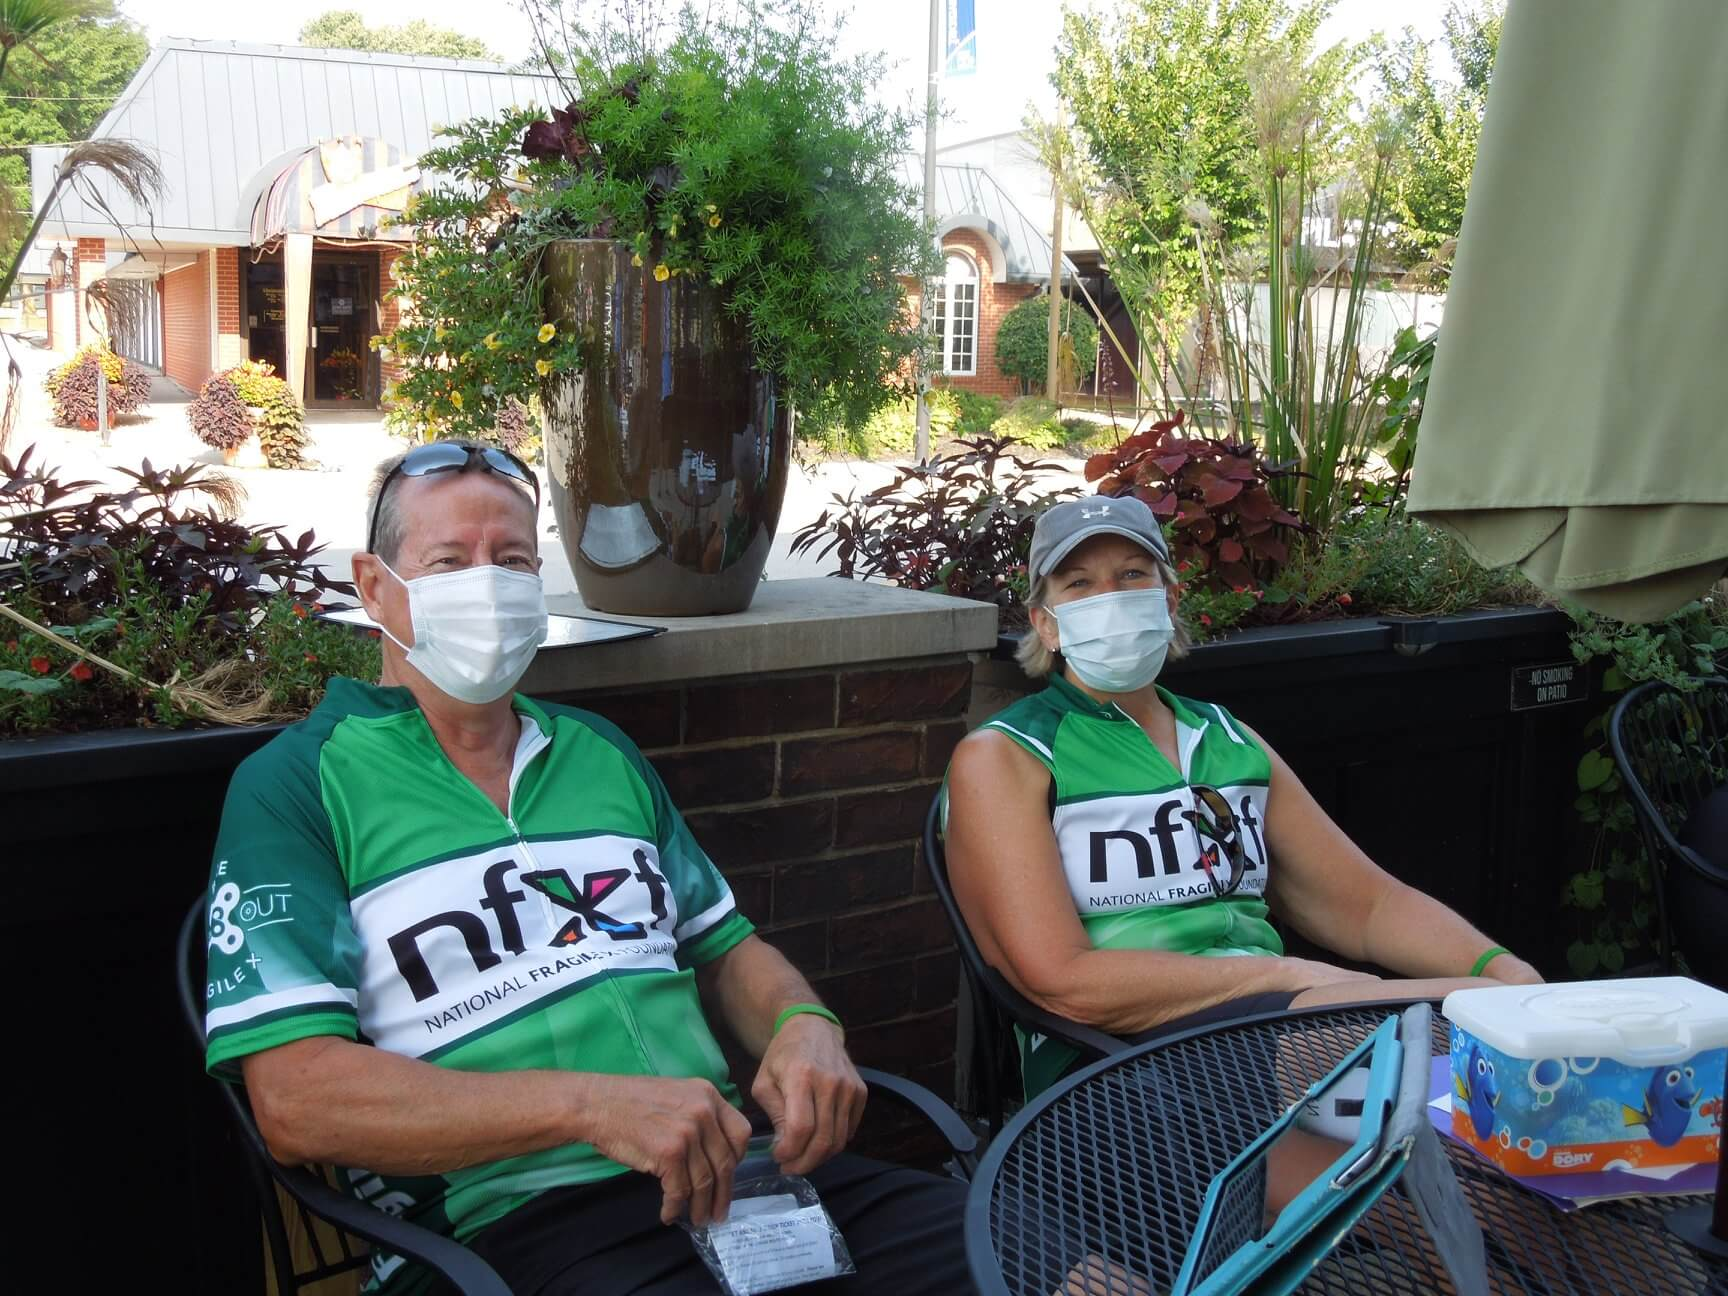 Two participants at the Bike Out for Fragile X with masks on